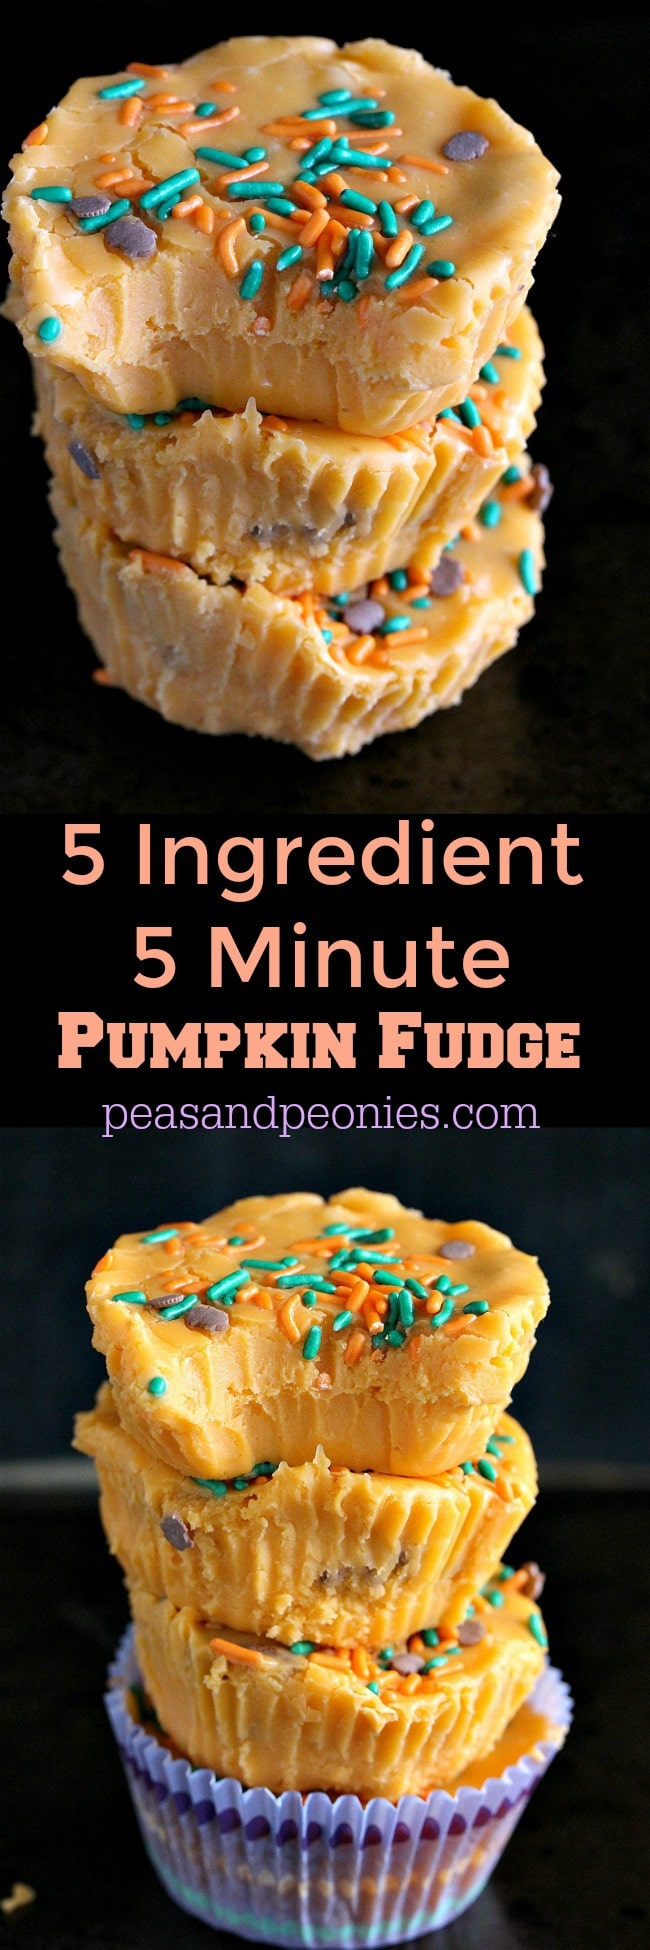 Pumpkin Fudge made in 5 minutes with only 5 ingredients! Creamy, delicious, no bake and also gluten free.